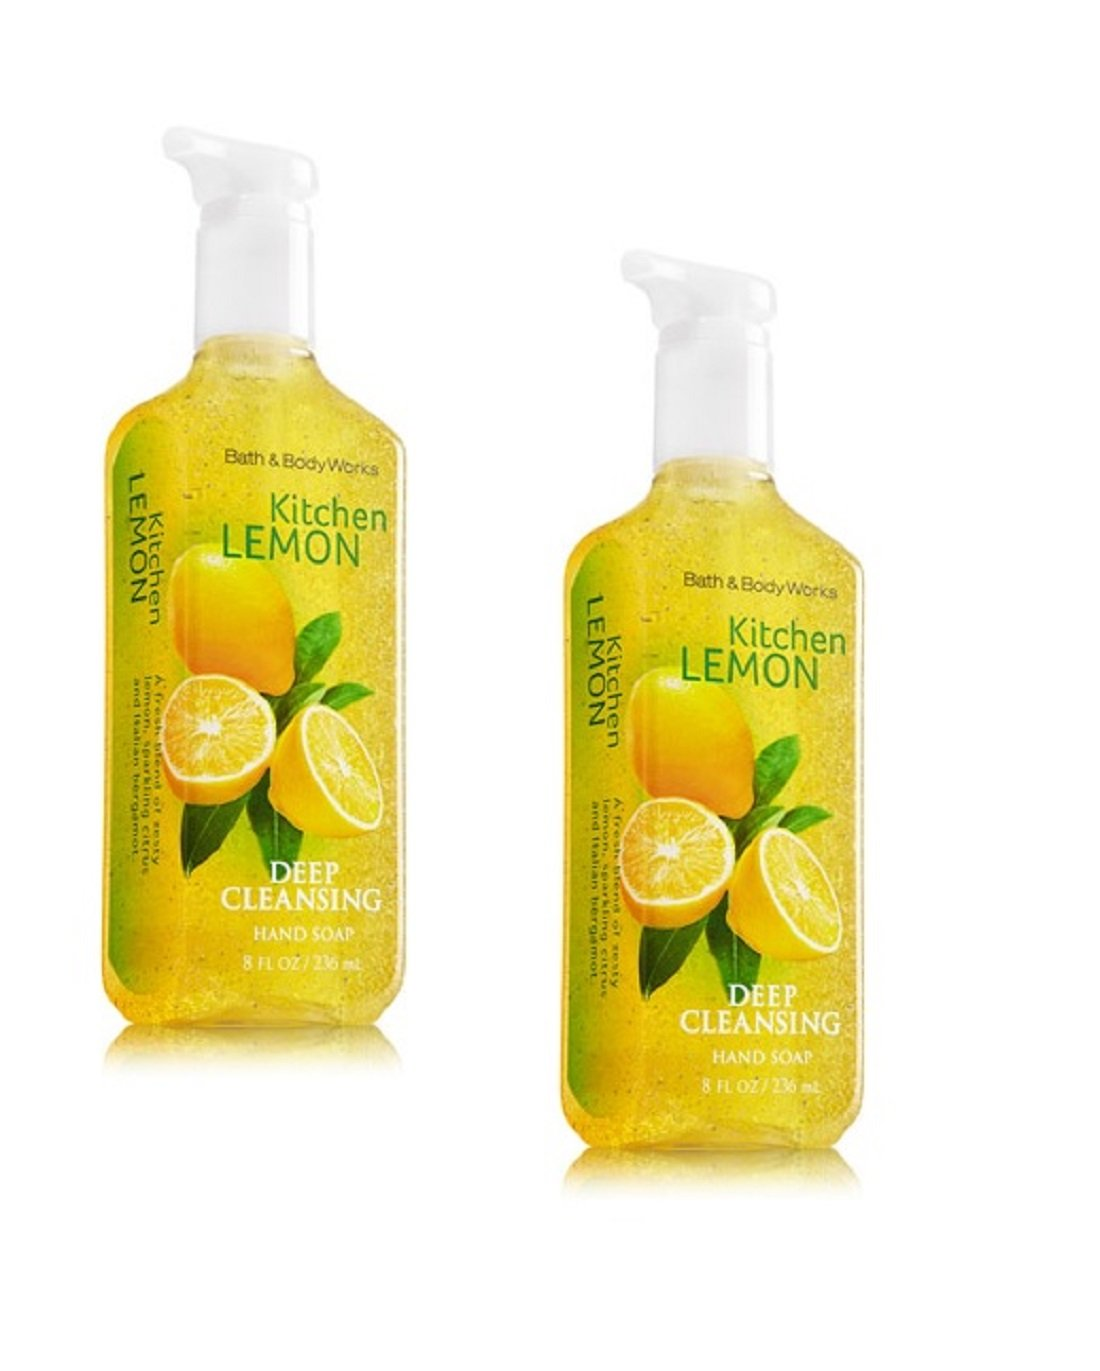 Bath Body Works Kitchen Lemon Deep Cleansing Hand Soap